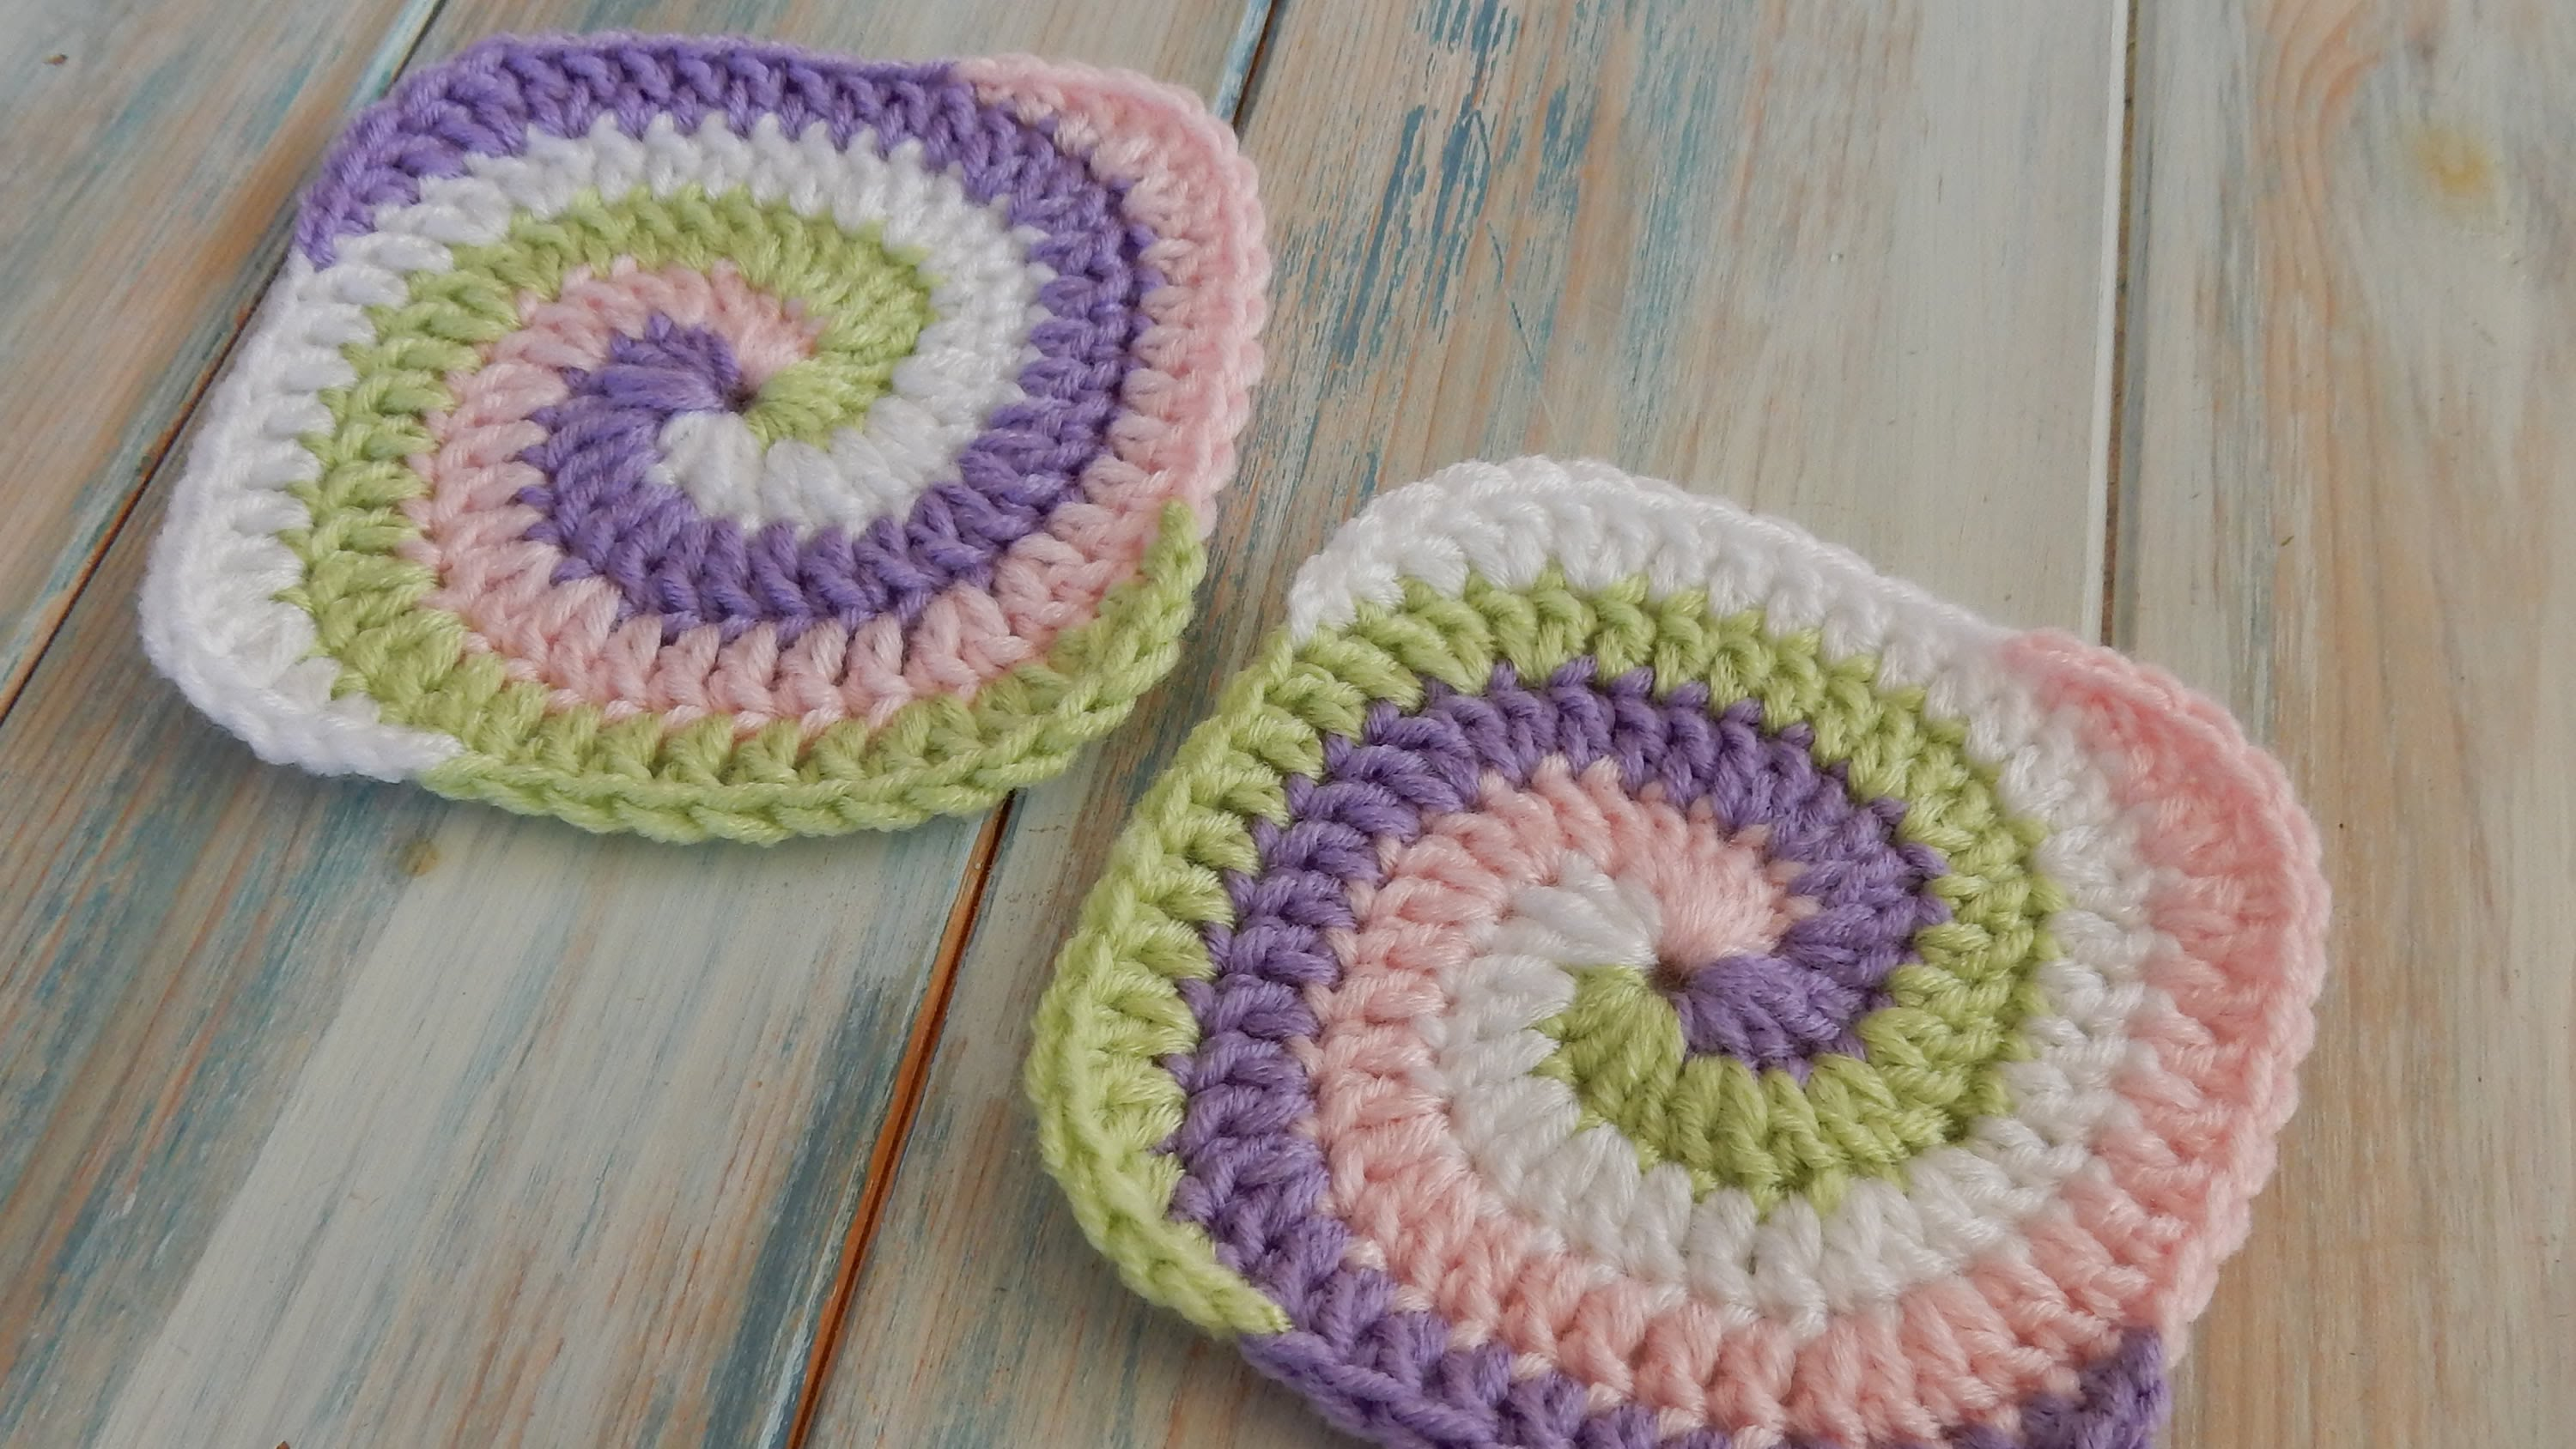 How To Knit A Blanket For Beginners Step By Step